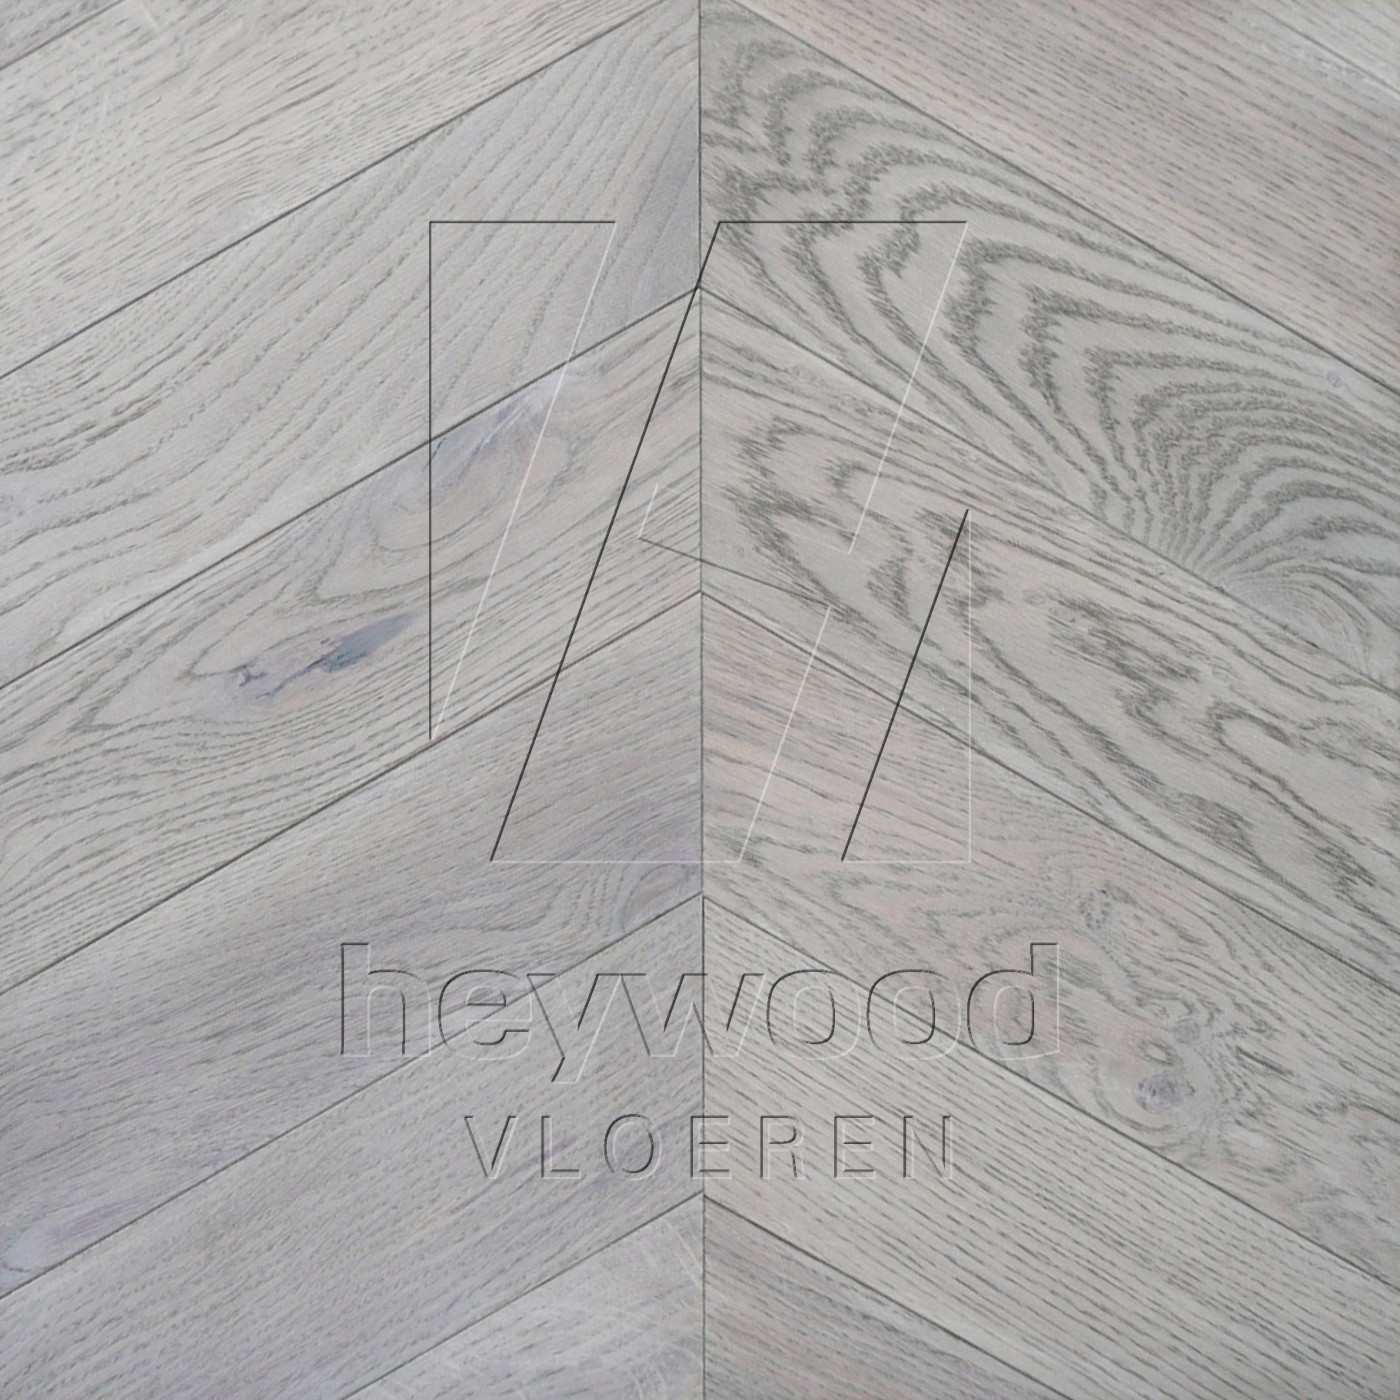 'Chambéry' Chevron 60°, Bespoke Character in Chevron of Pattern & Panel Floors